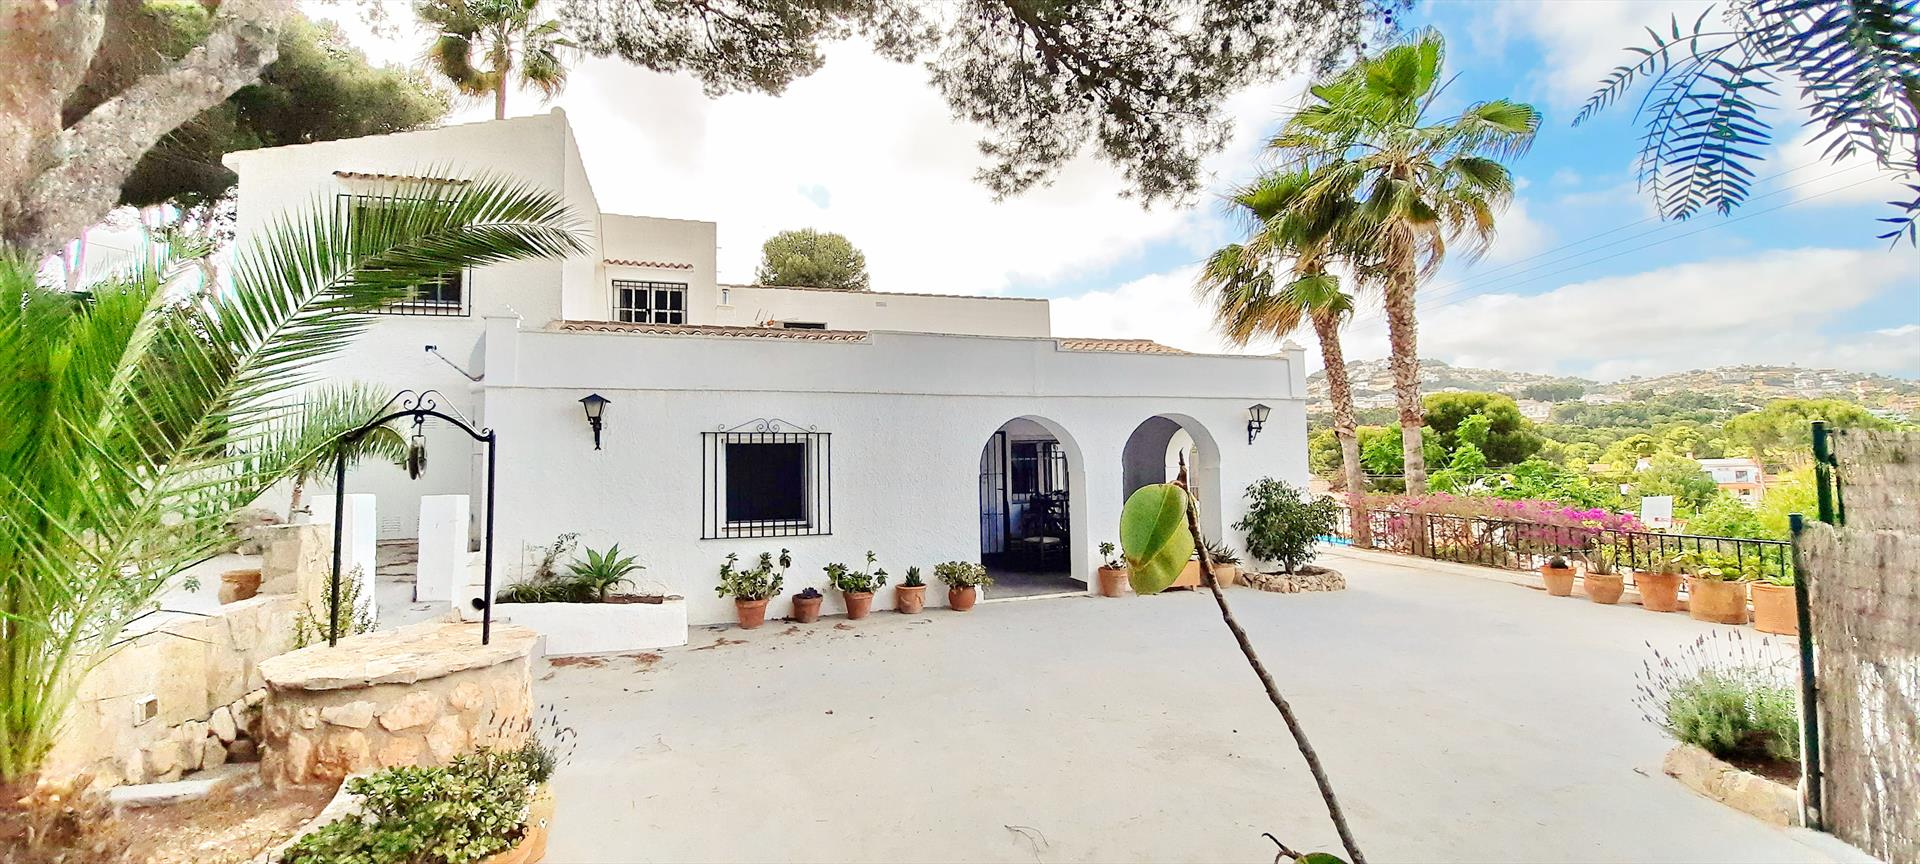 Villa Mamounia Solidays Moraira,Wonderful and cheerful villa in Moraira, on the Costa Blanca, Spain  with private pool for 8 persons.....